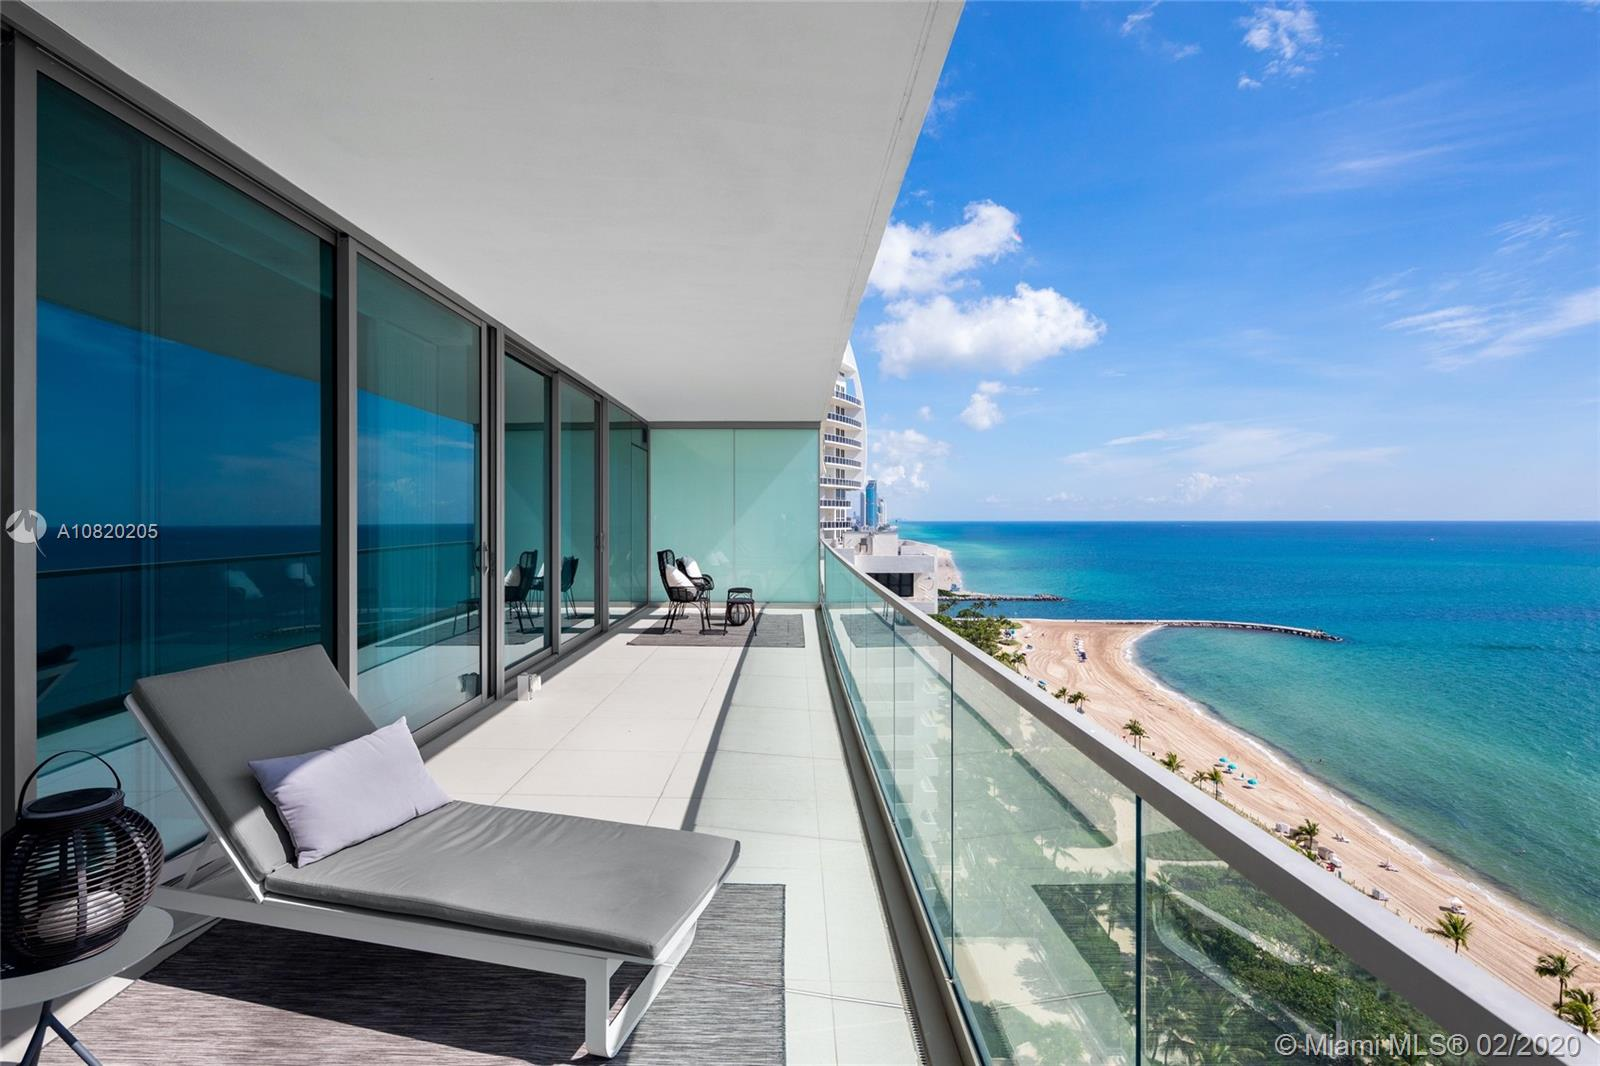 Spectacular flow-through oceanfront residence in the prestigious Oceana Bal Harbour. Fully renovated with over 3,450 Sq Ft. Unobstructed ocean and city views. Oceana features concierge service, residents only Starr catering restaurant, spa, and fitness center, tennis courts, theatre, play area, pool and beach service with over 400 feet of ocean frontage and more. At 3,450 SF, with 3bed/4.5 Bath + Maiden Room